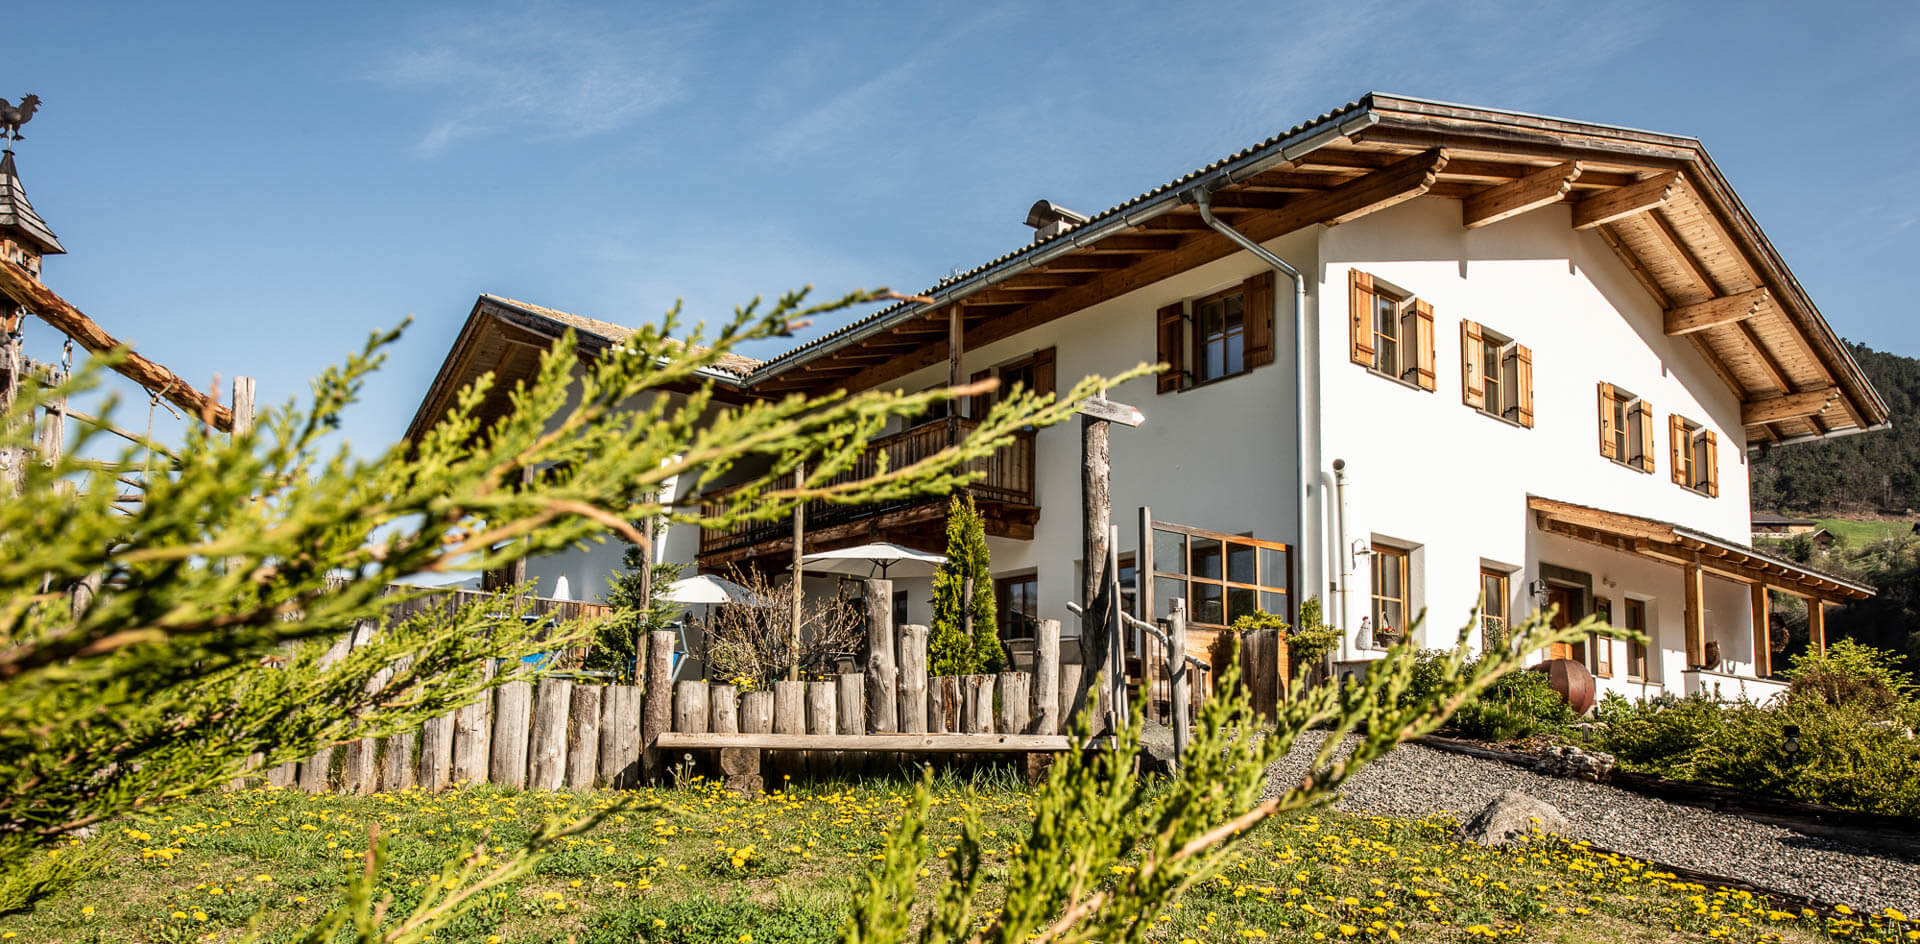 Vacanze in agriturismo a Örtlhof